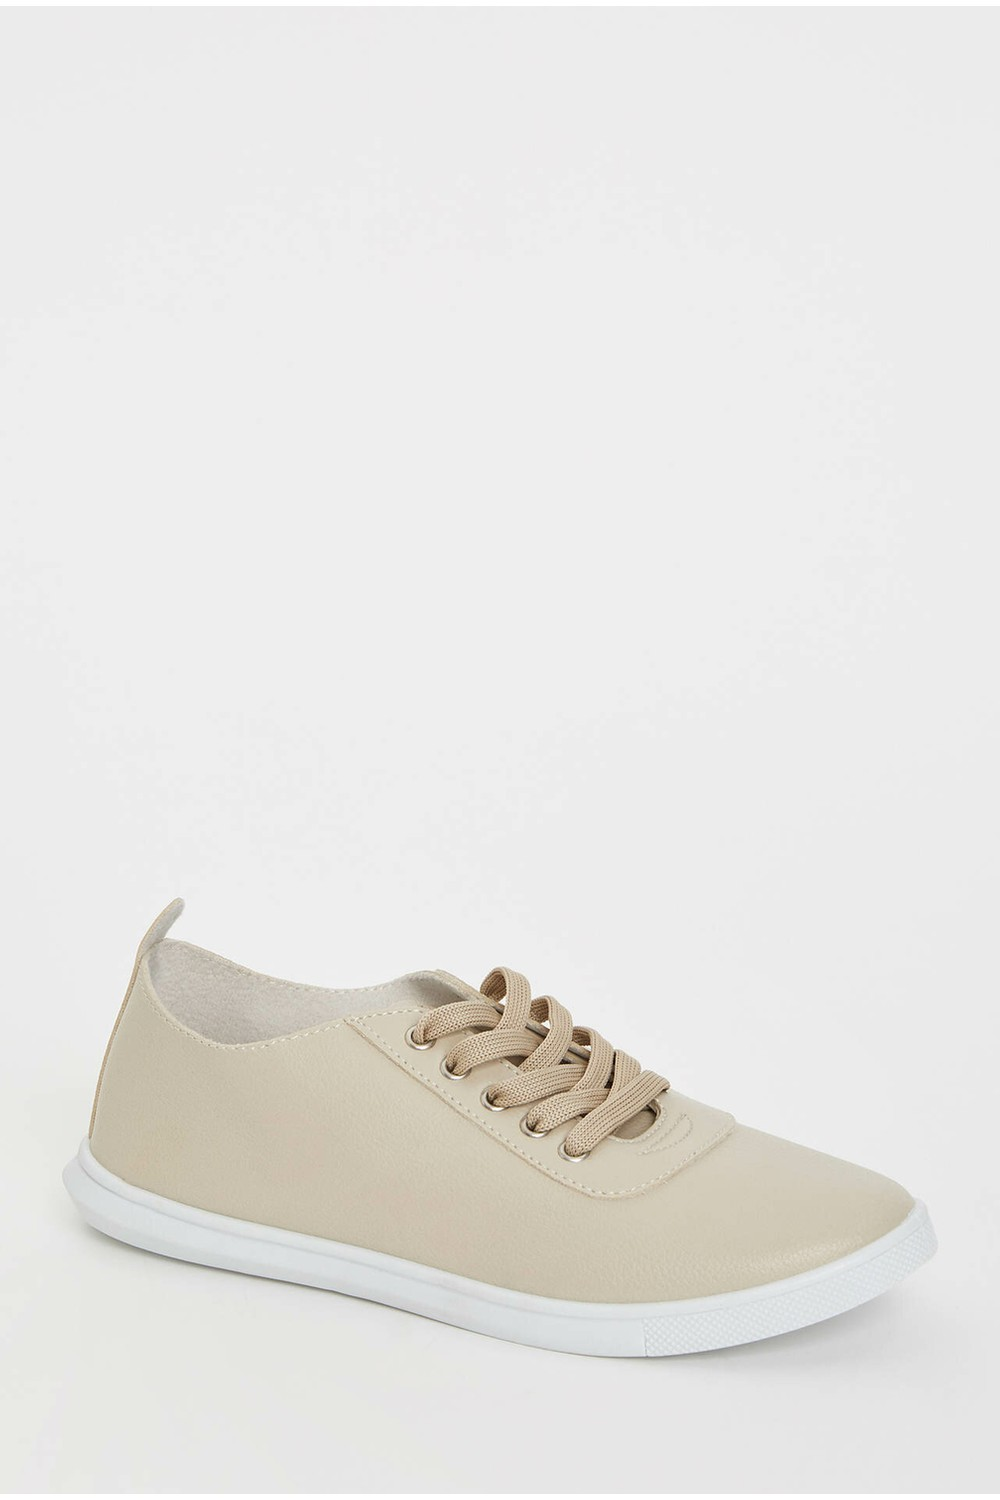 DeFacto Women's Sneakers